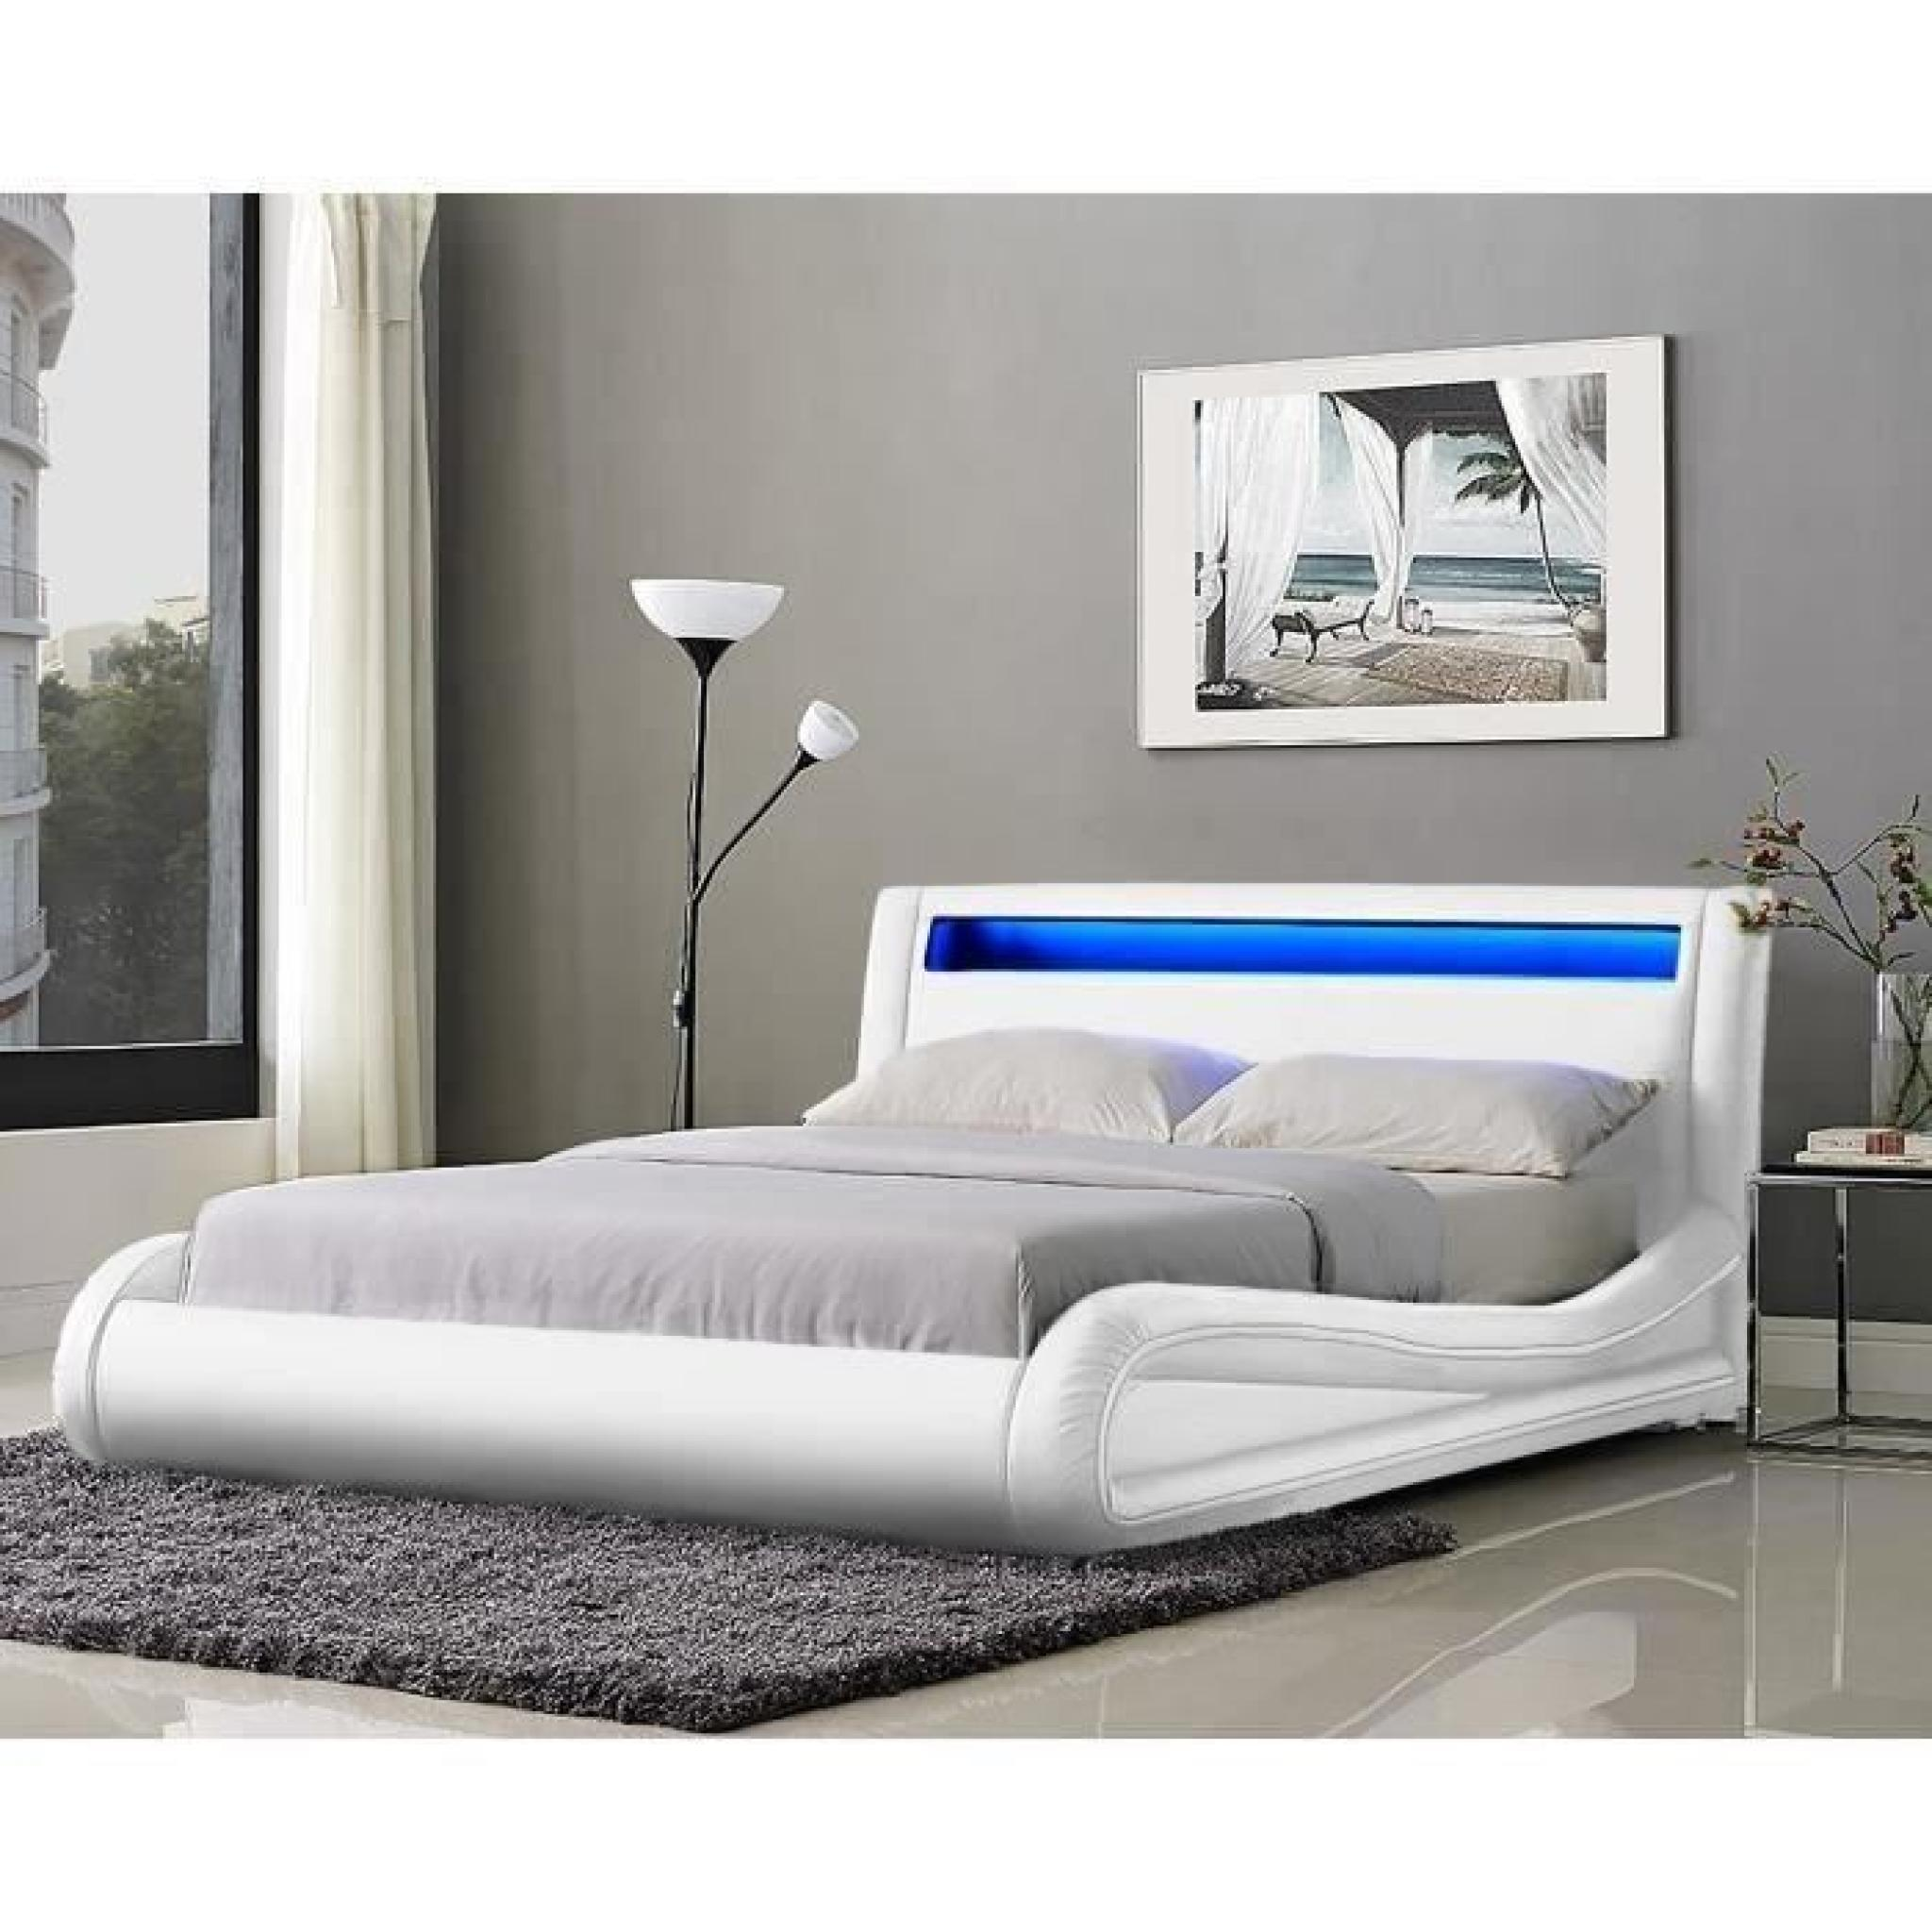 neptune lit led adulte 180x200 cm blanc achat vente lit pas cher couleur et. Black Bedroom Furniture Sets. Home Design Ideas